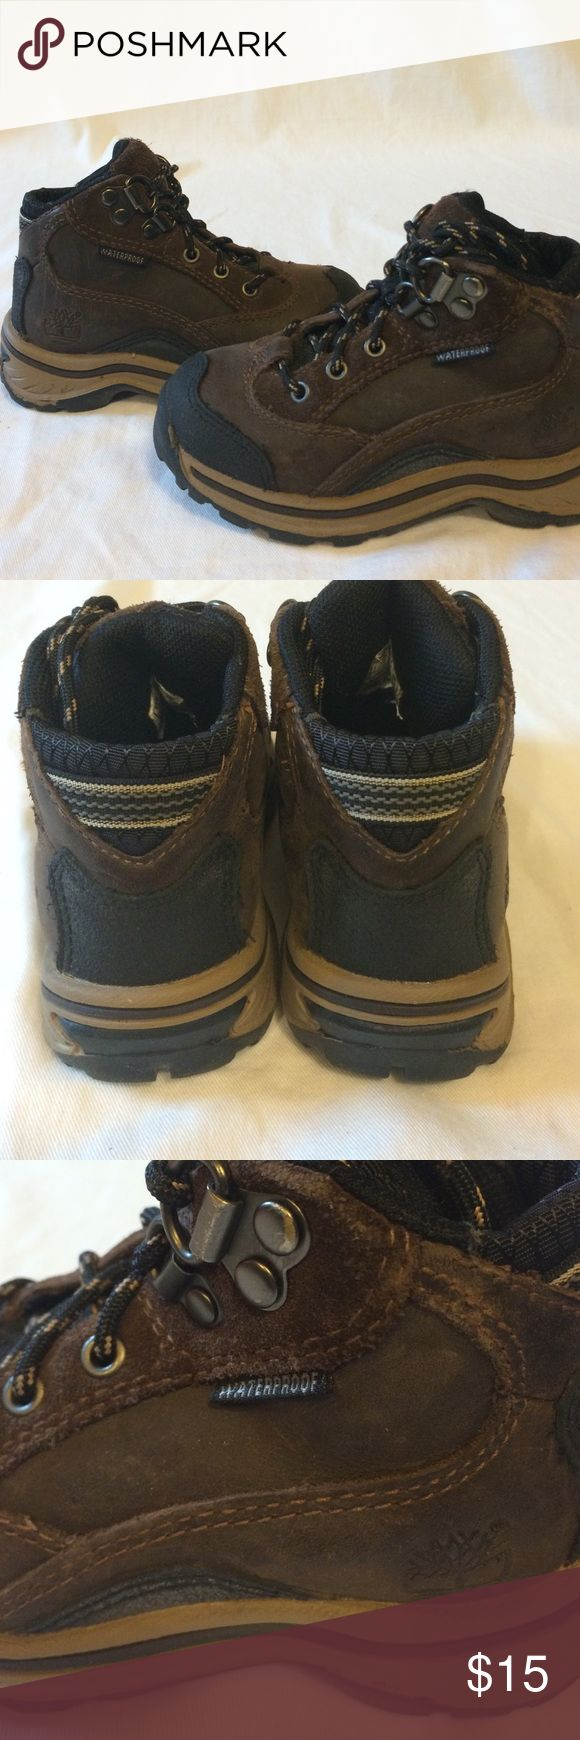 BOYS Timberland boots Waterproof timberland boots. Genuine and manmade leather. Worn, see pictures for signs of wear. In good condition. Timberland Shoes Rain & Snow Boots